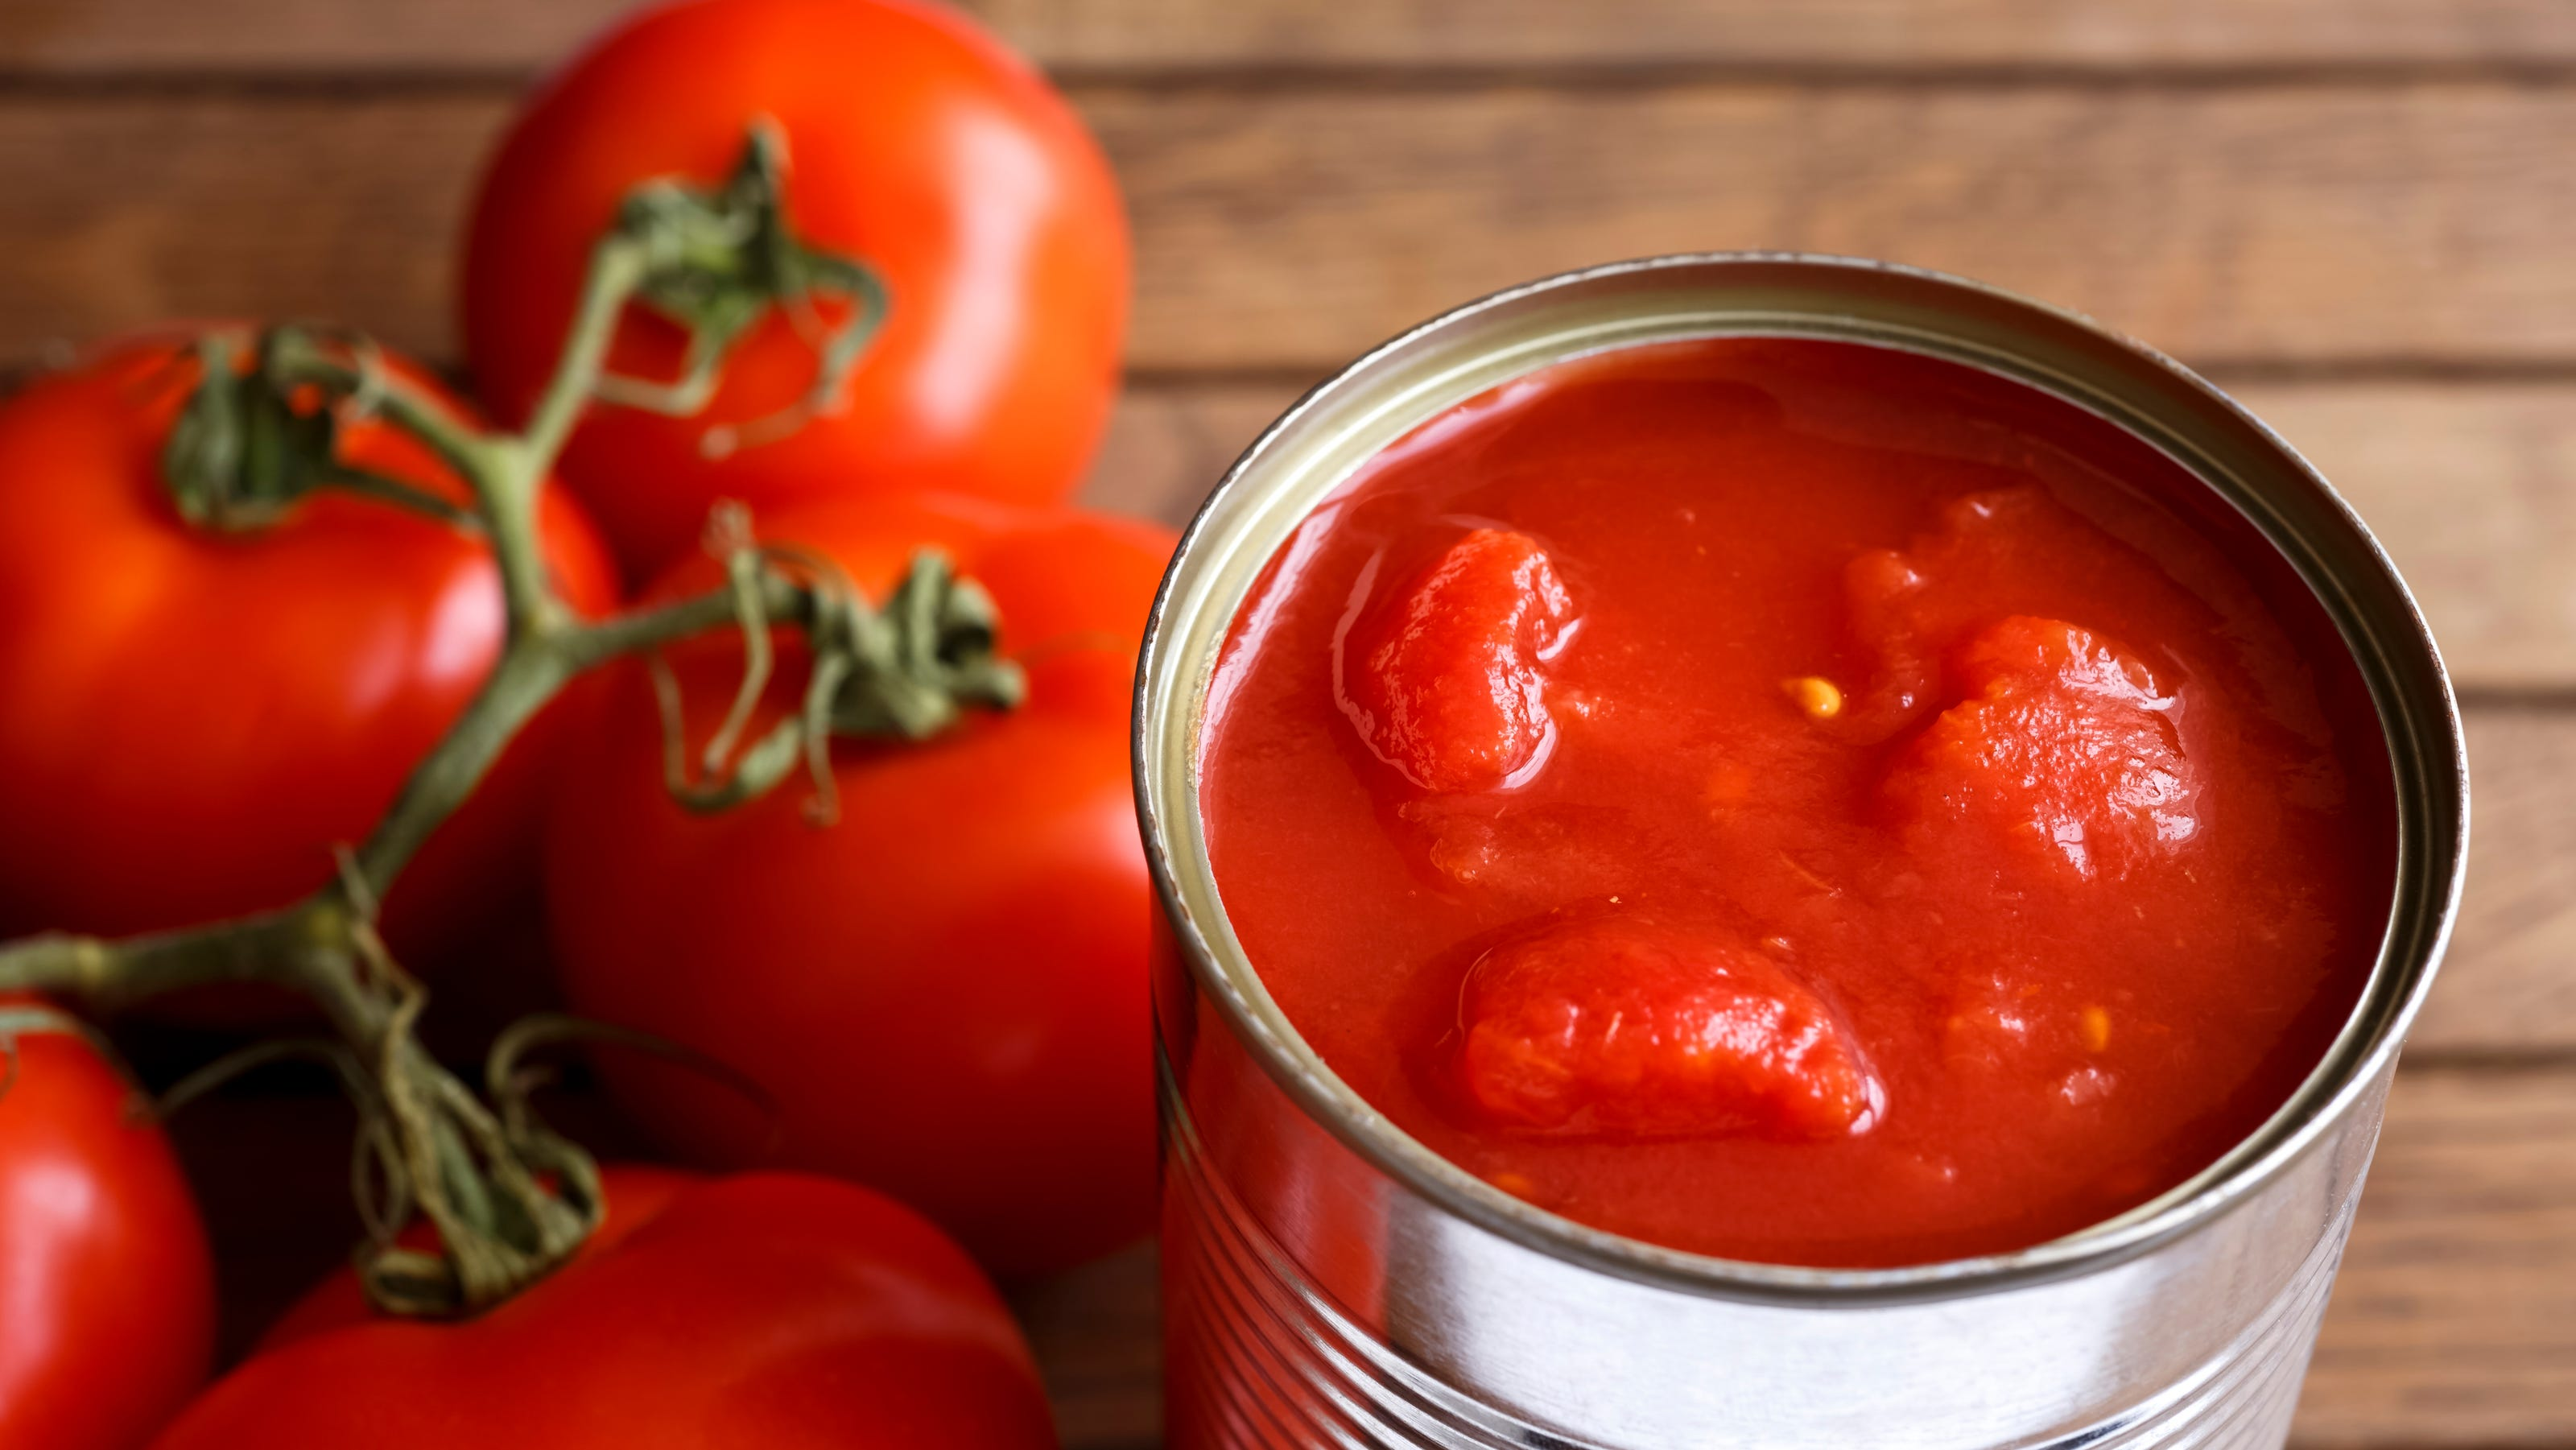 Coronavirus: Five delicious ways to use canned tomatoes